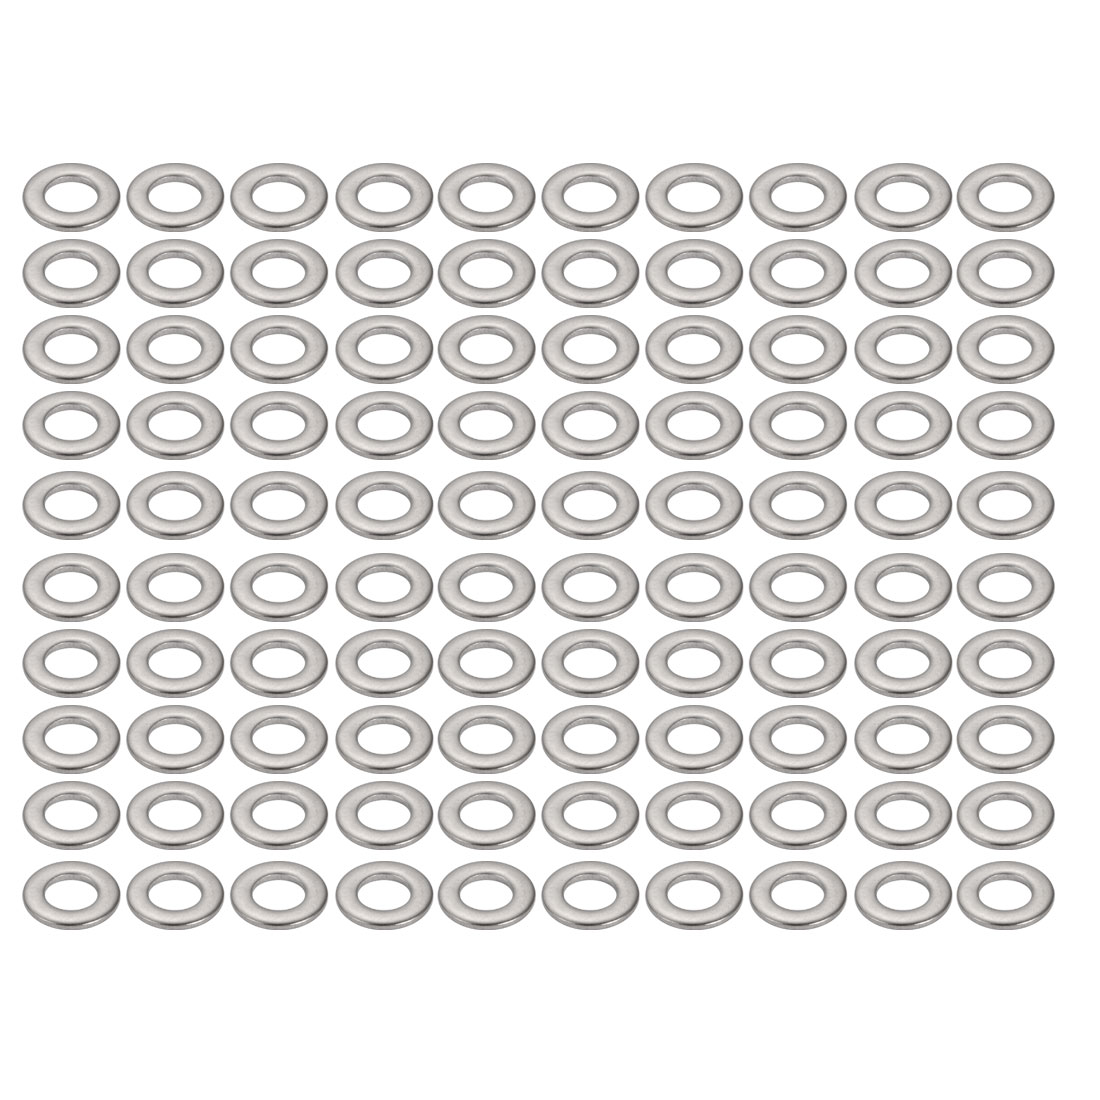 M5x10mmx1mm DIN125 316 Stainless Steel Flat Washer Silver Tone 100pcs